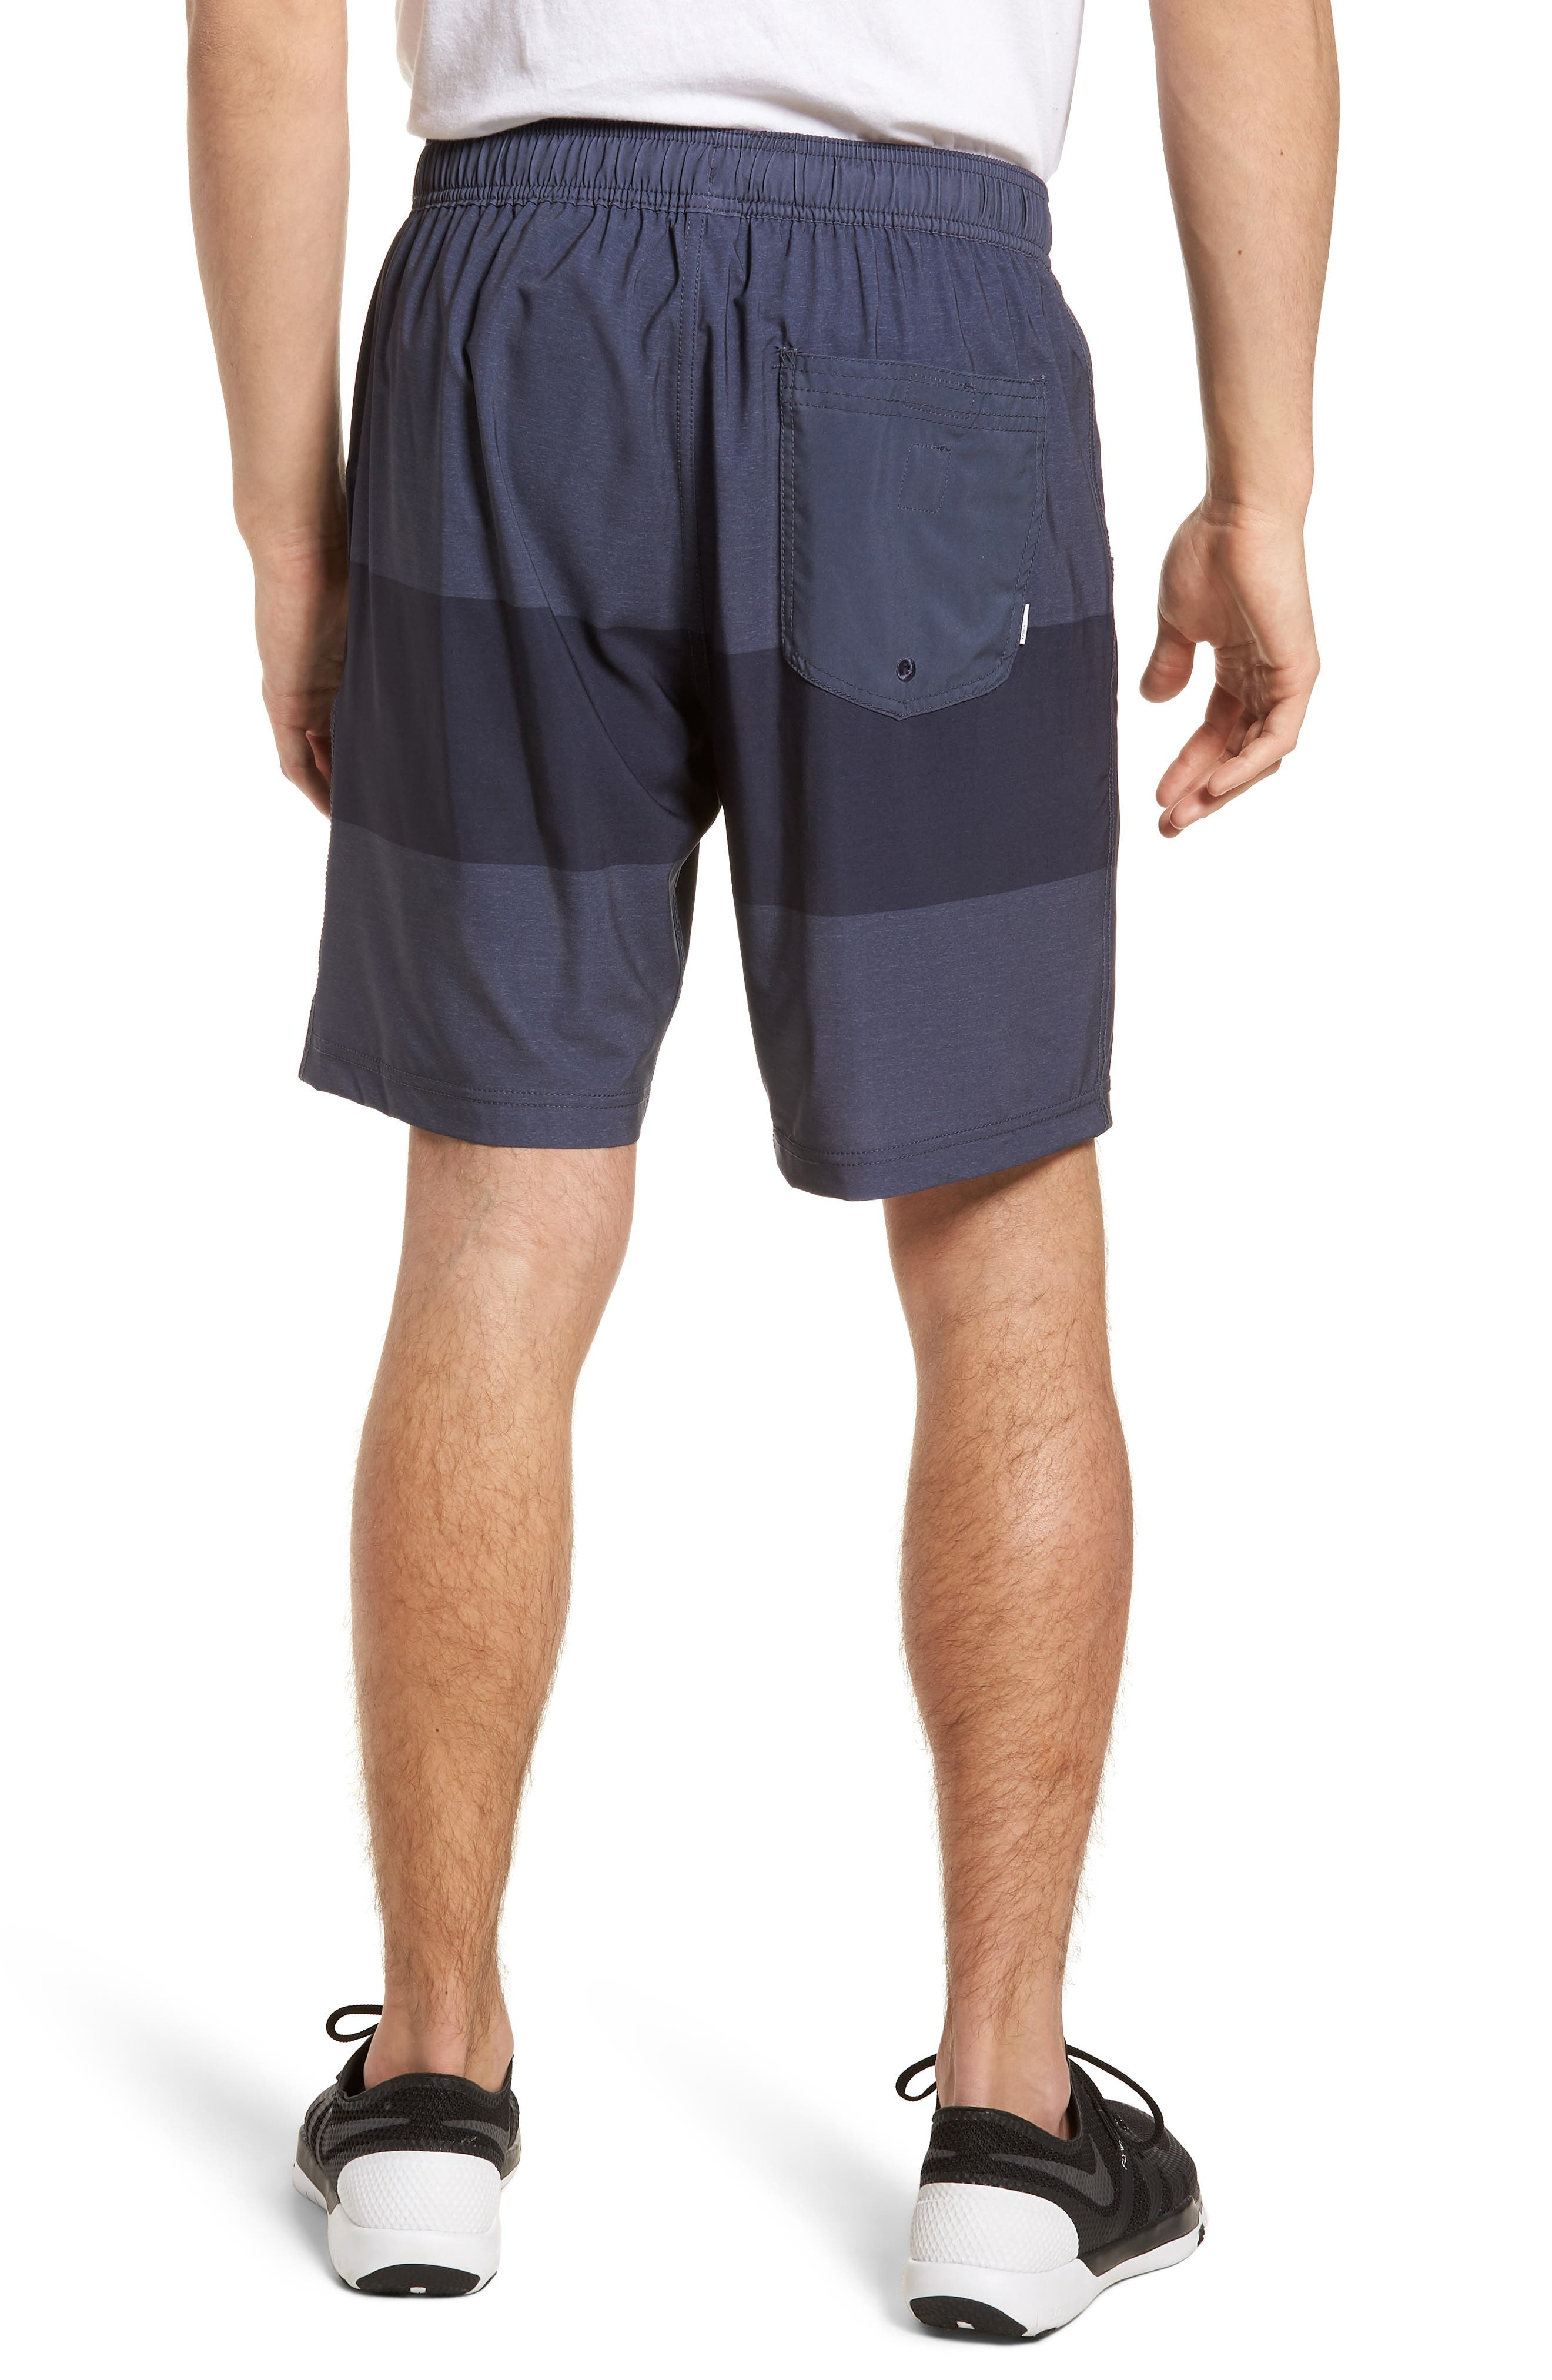 Kore Shorts,                             Alternate thumbnail 2, color,                             Navy Texture Block